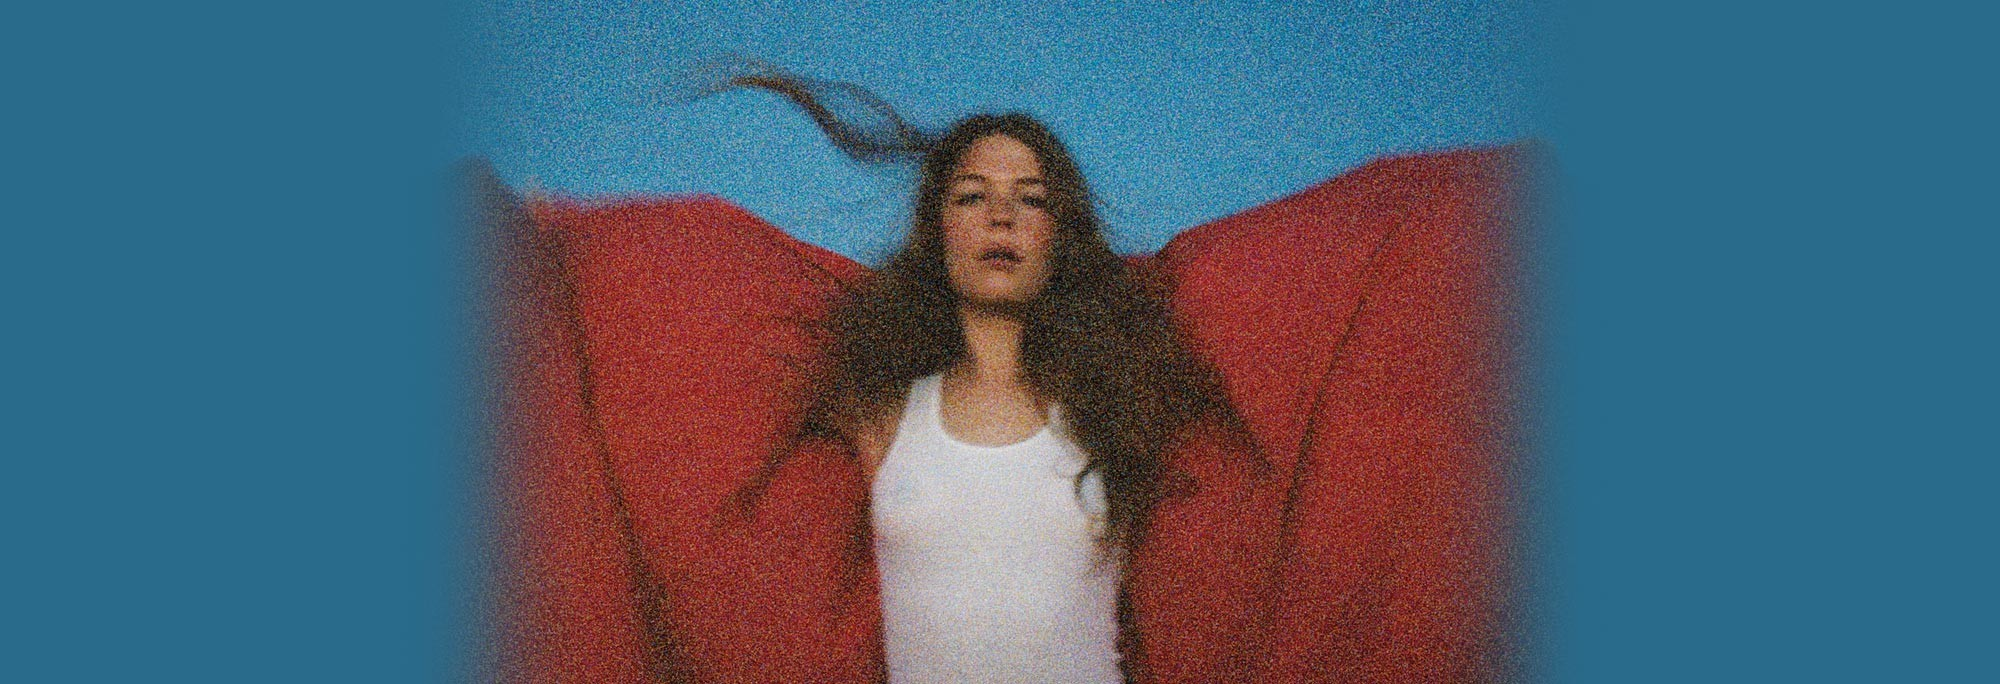 Maggie Rogers On Tour